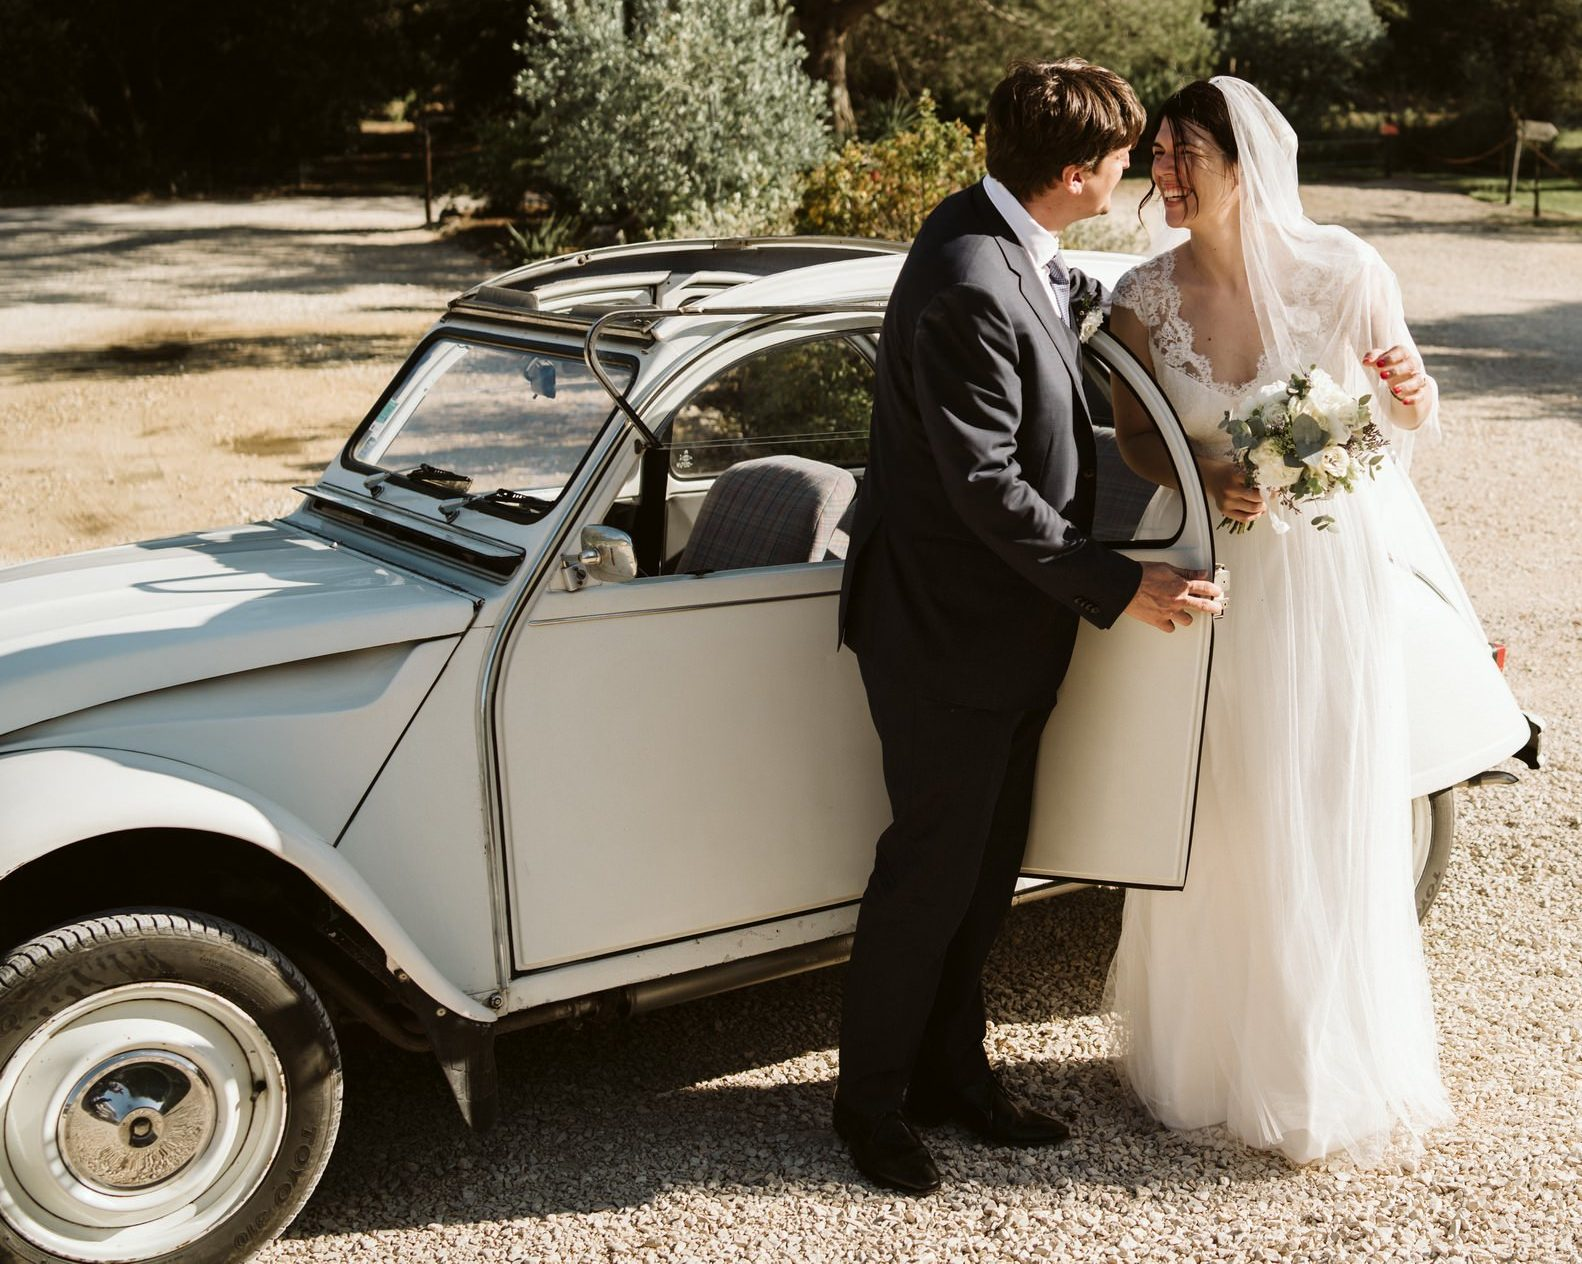 Organiser son mariage : les transports